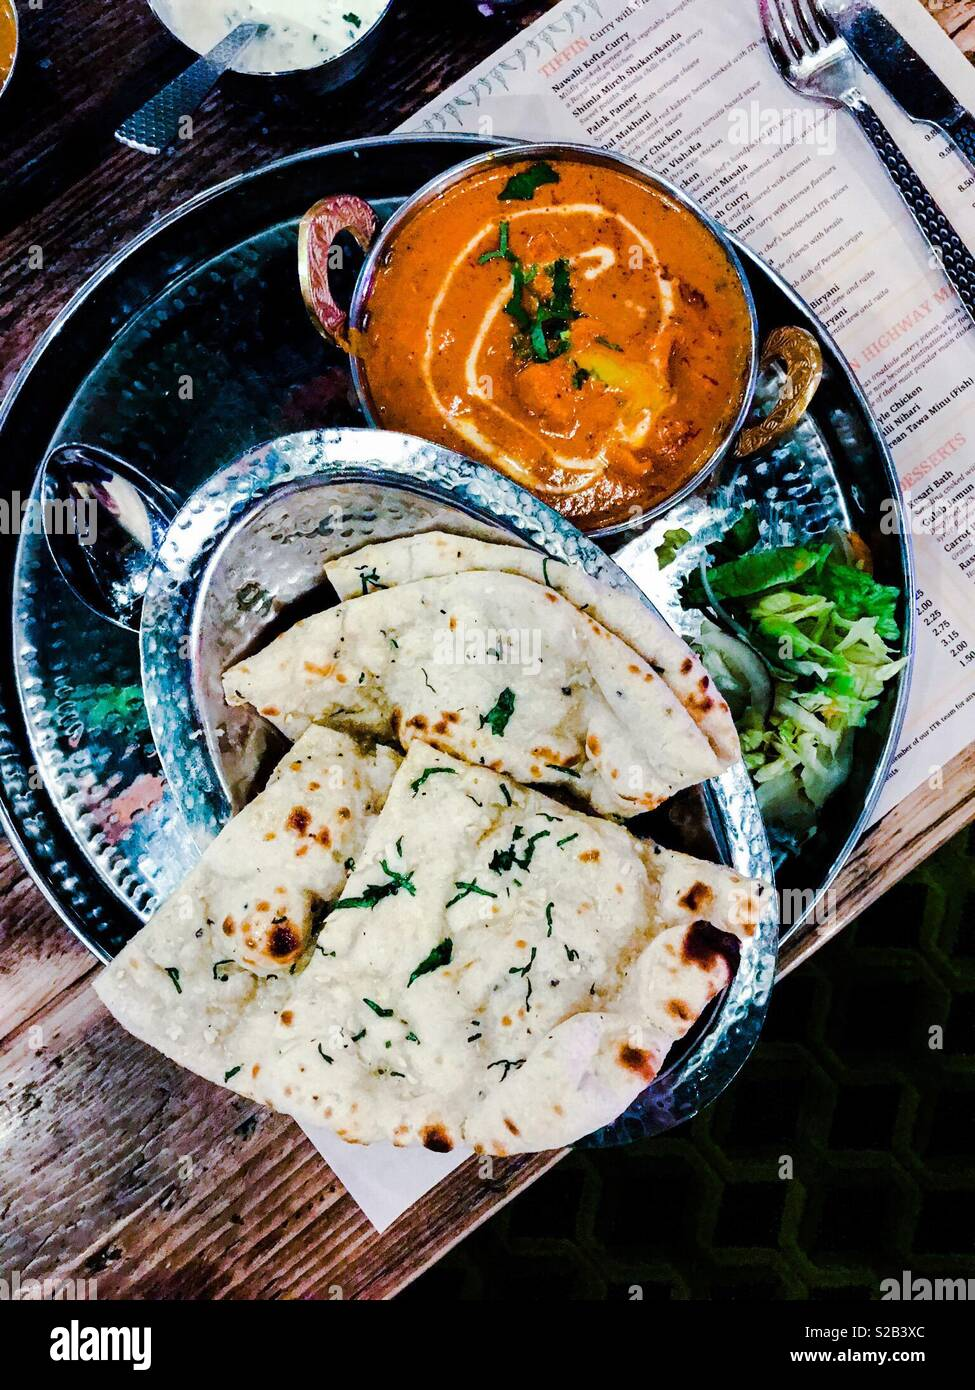 Southern Indian Butter Chicken Curry With Garlic Naan Bread On Silver Platter Stock Photo Alamy